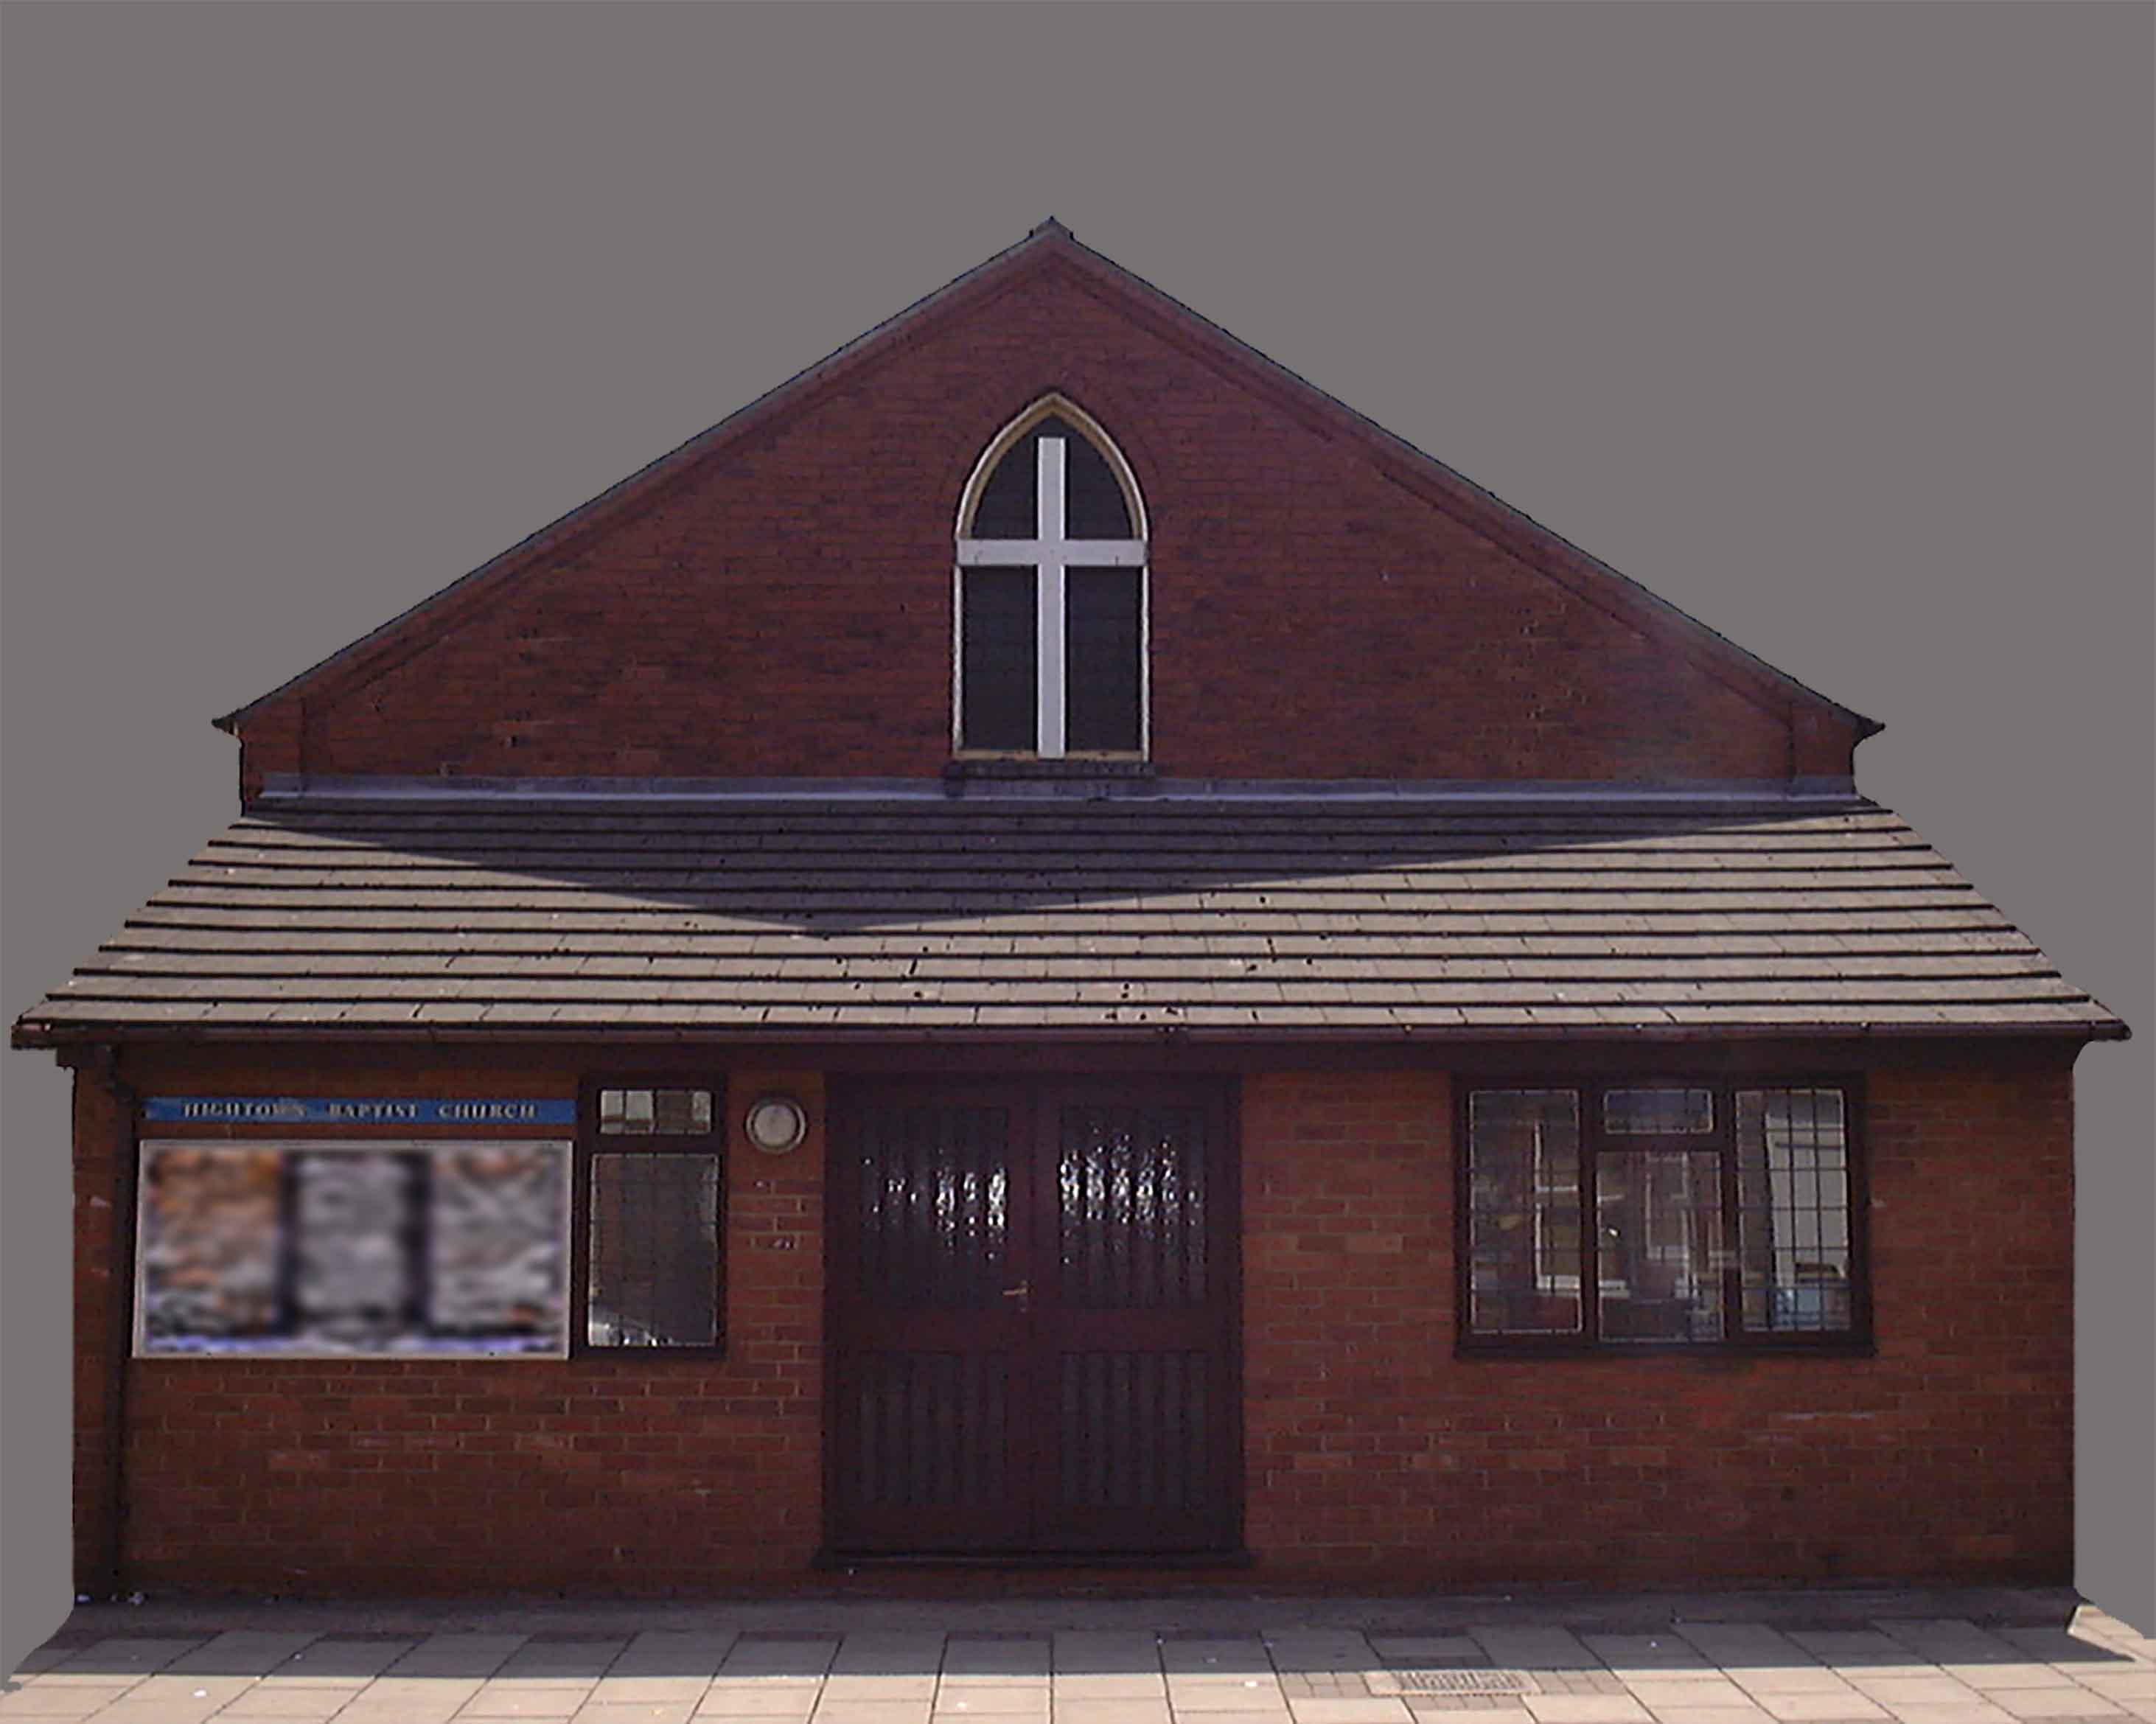 Hightown Baptist Church